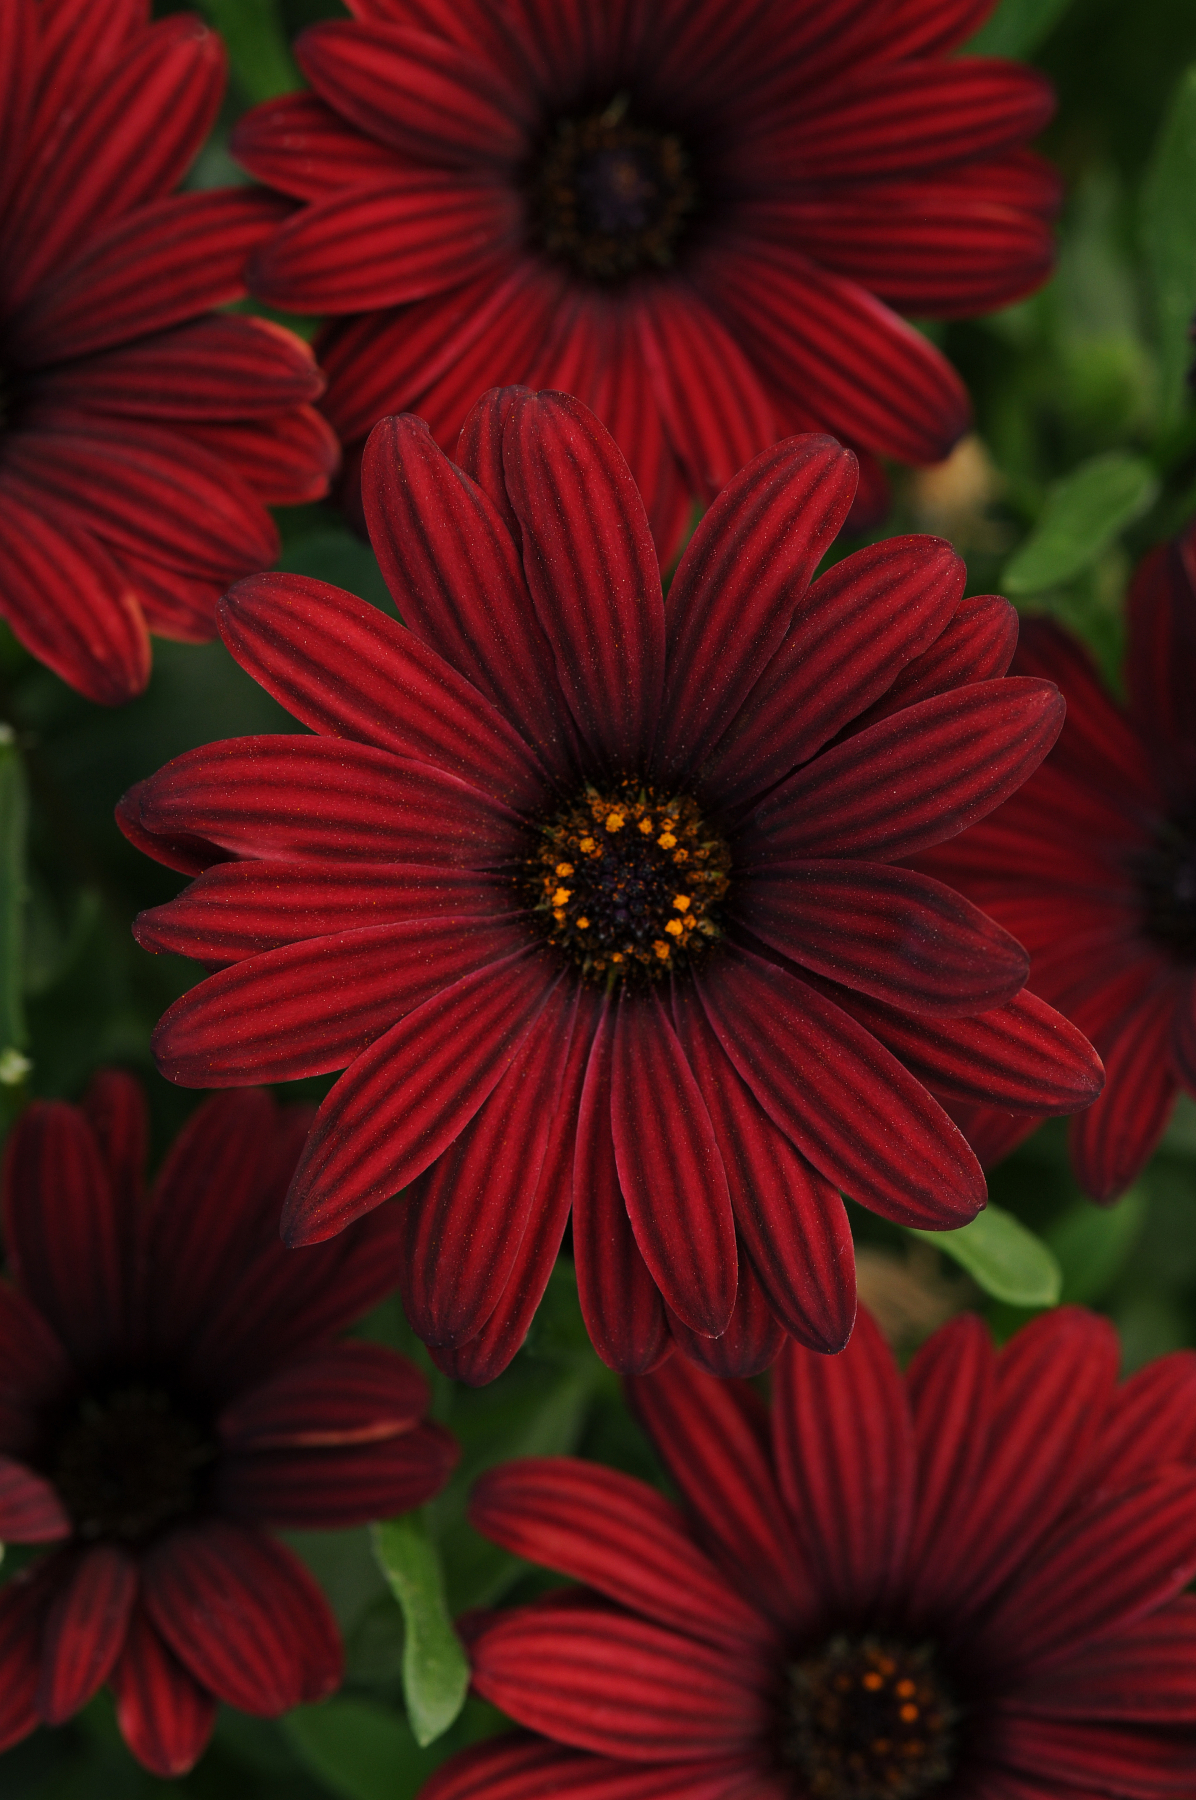 Burgundy Is The Hot Color For Fall Gardens La Mesa Courier